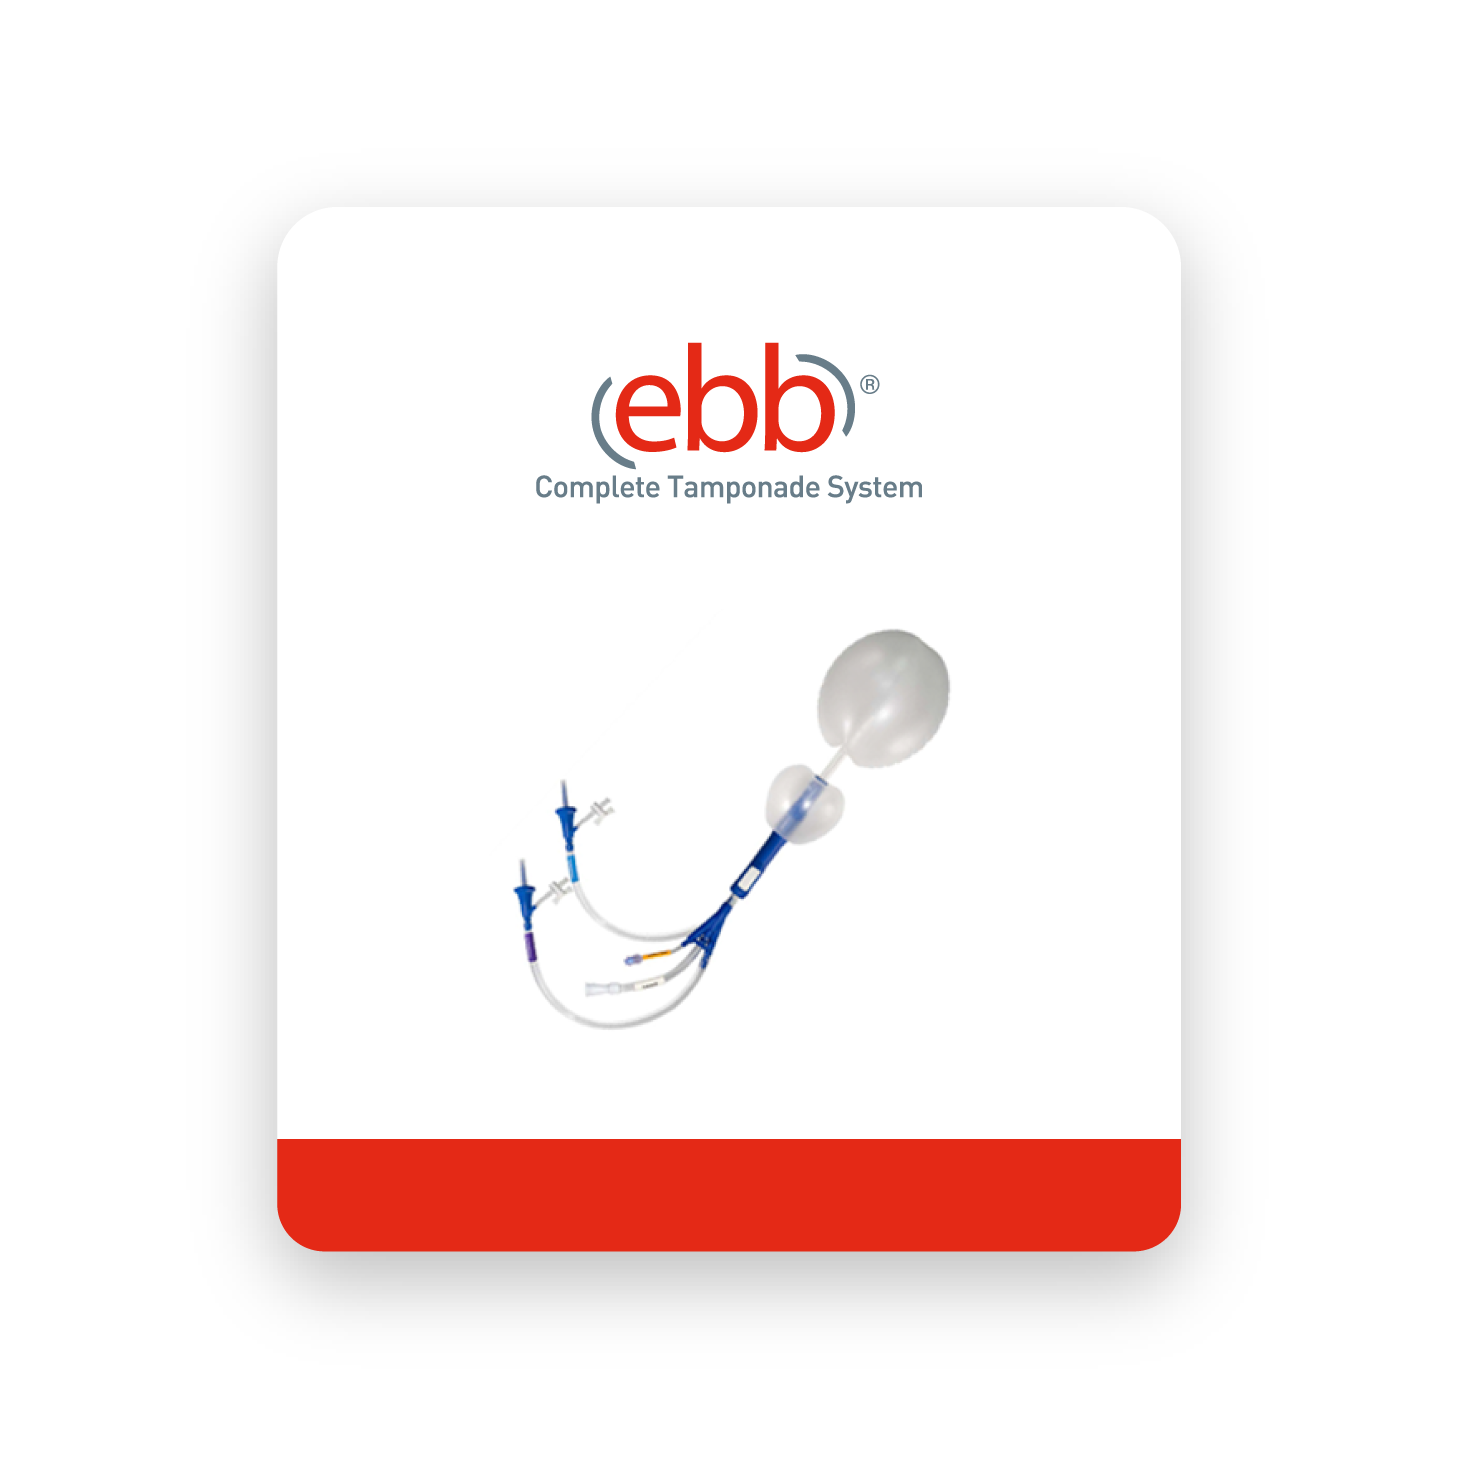 ebb Complete Tamponade System